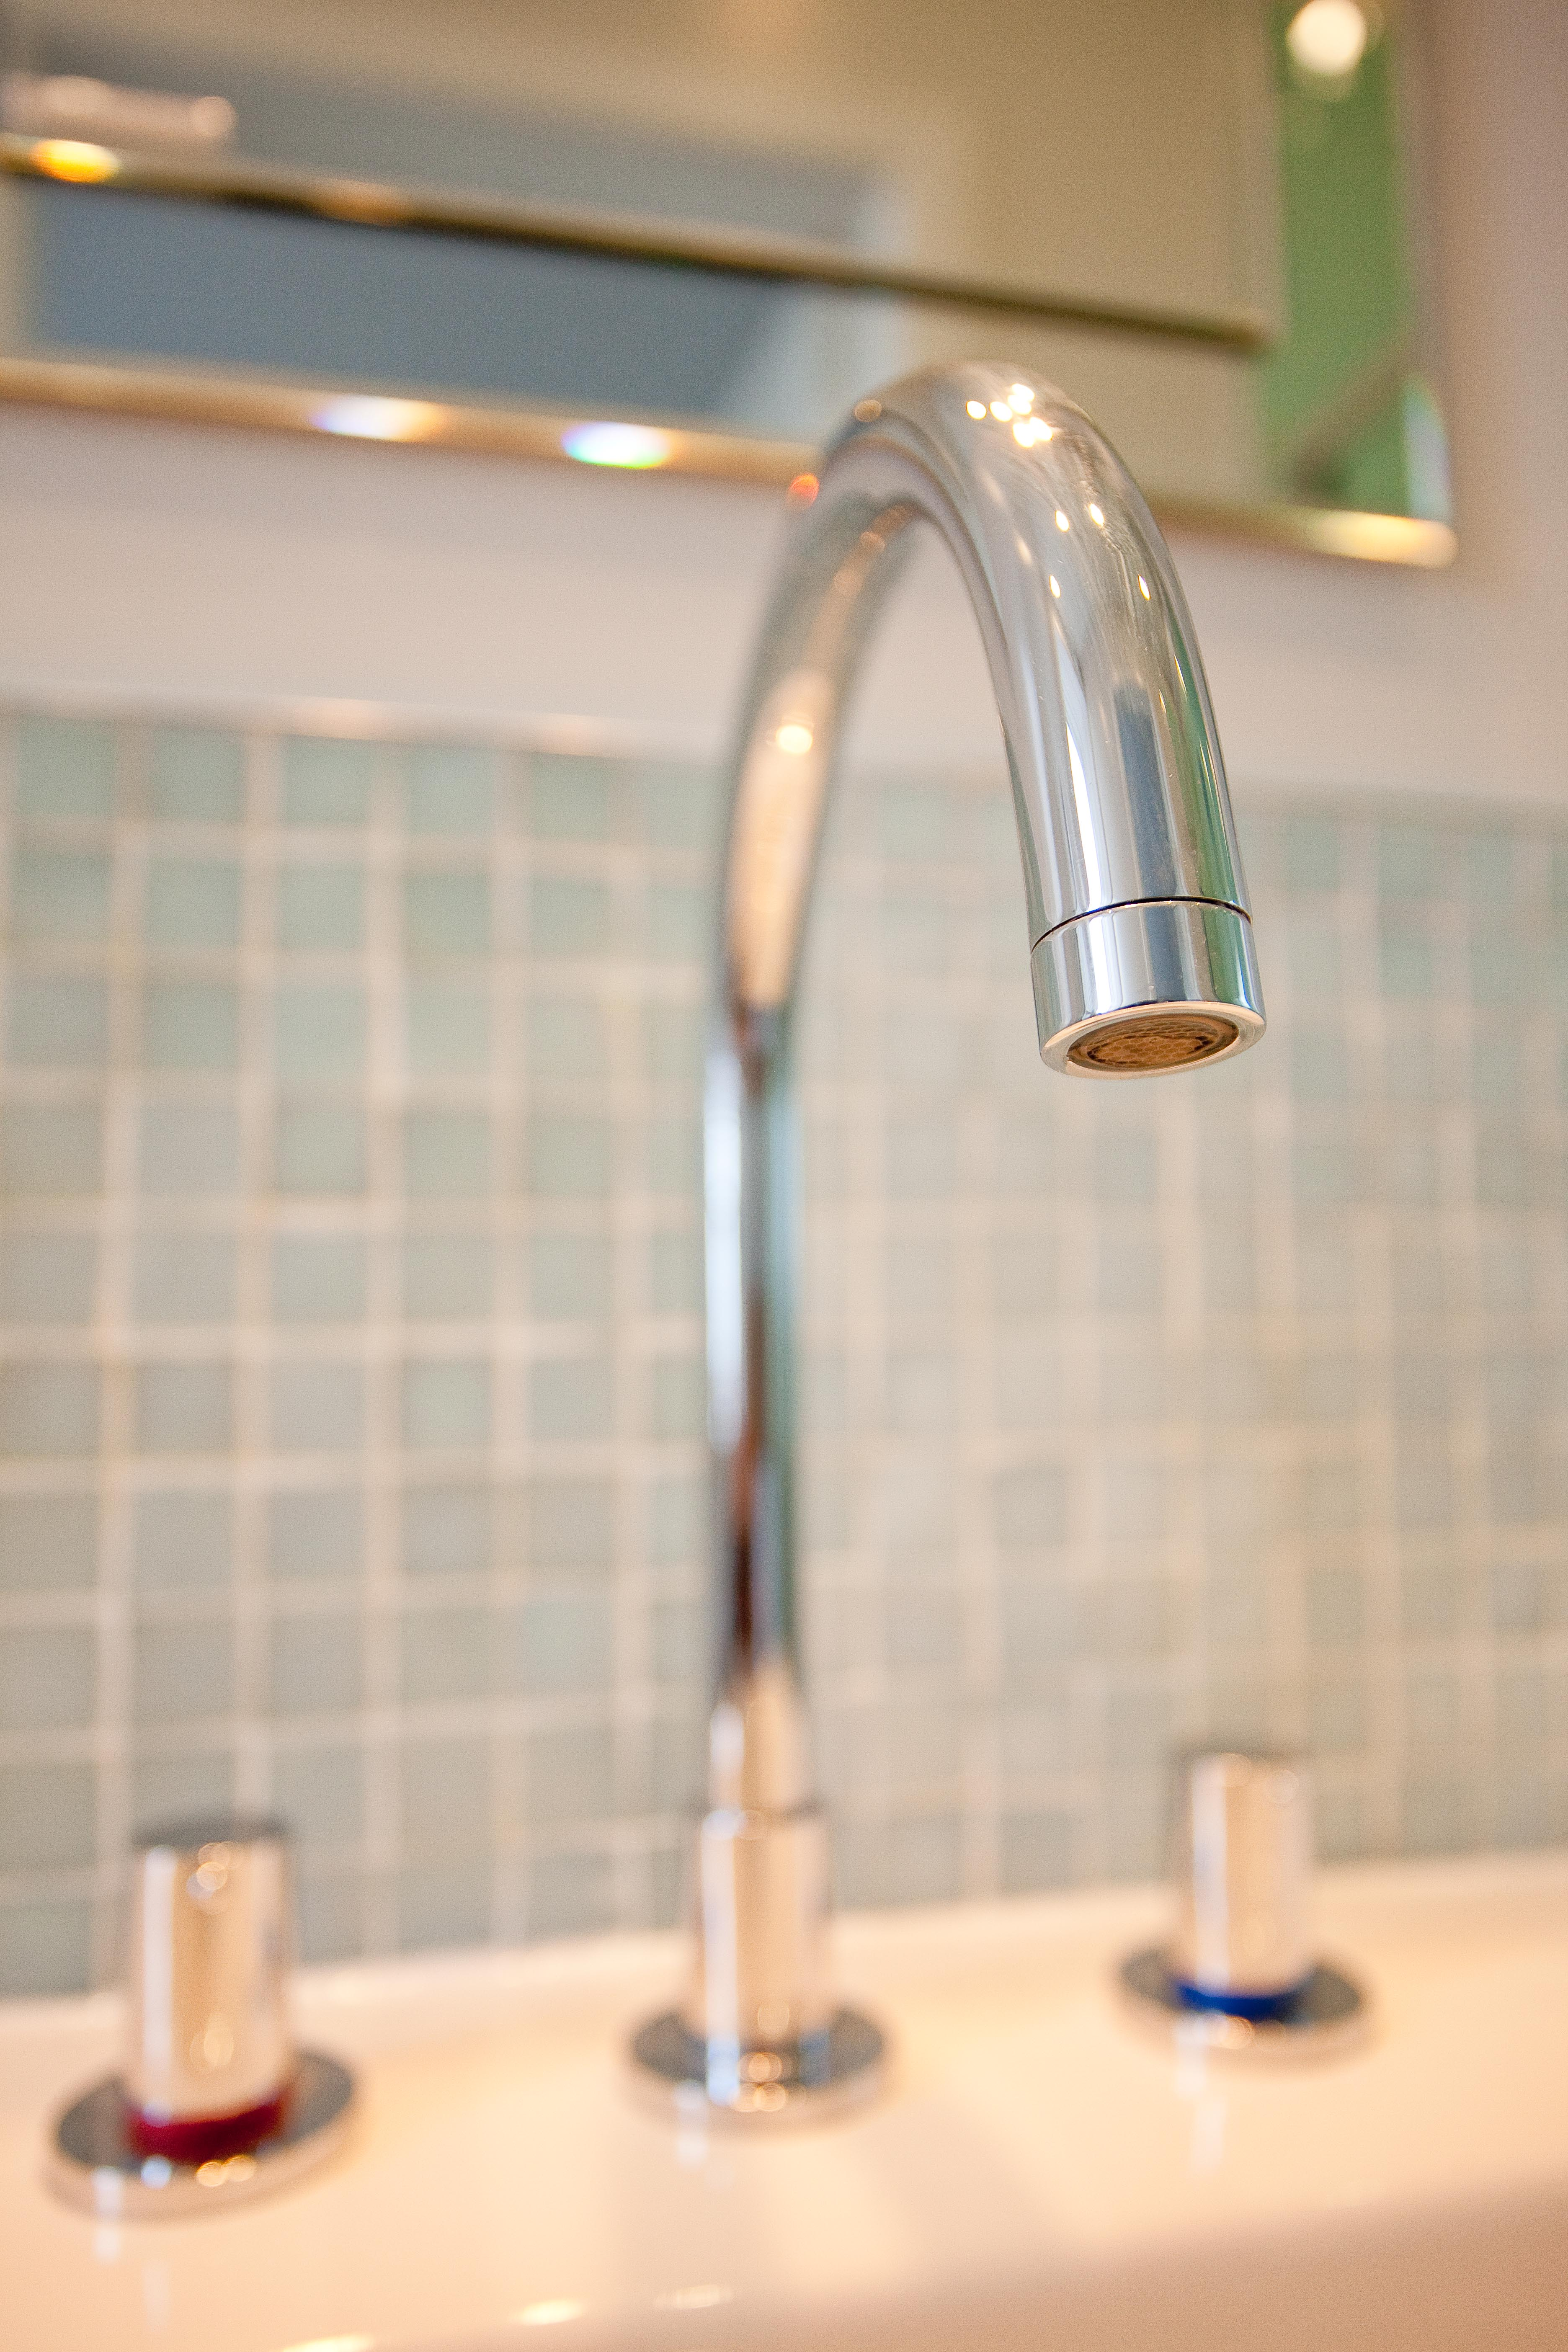 Curved basin tap with mosaic tiles as splashback